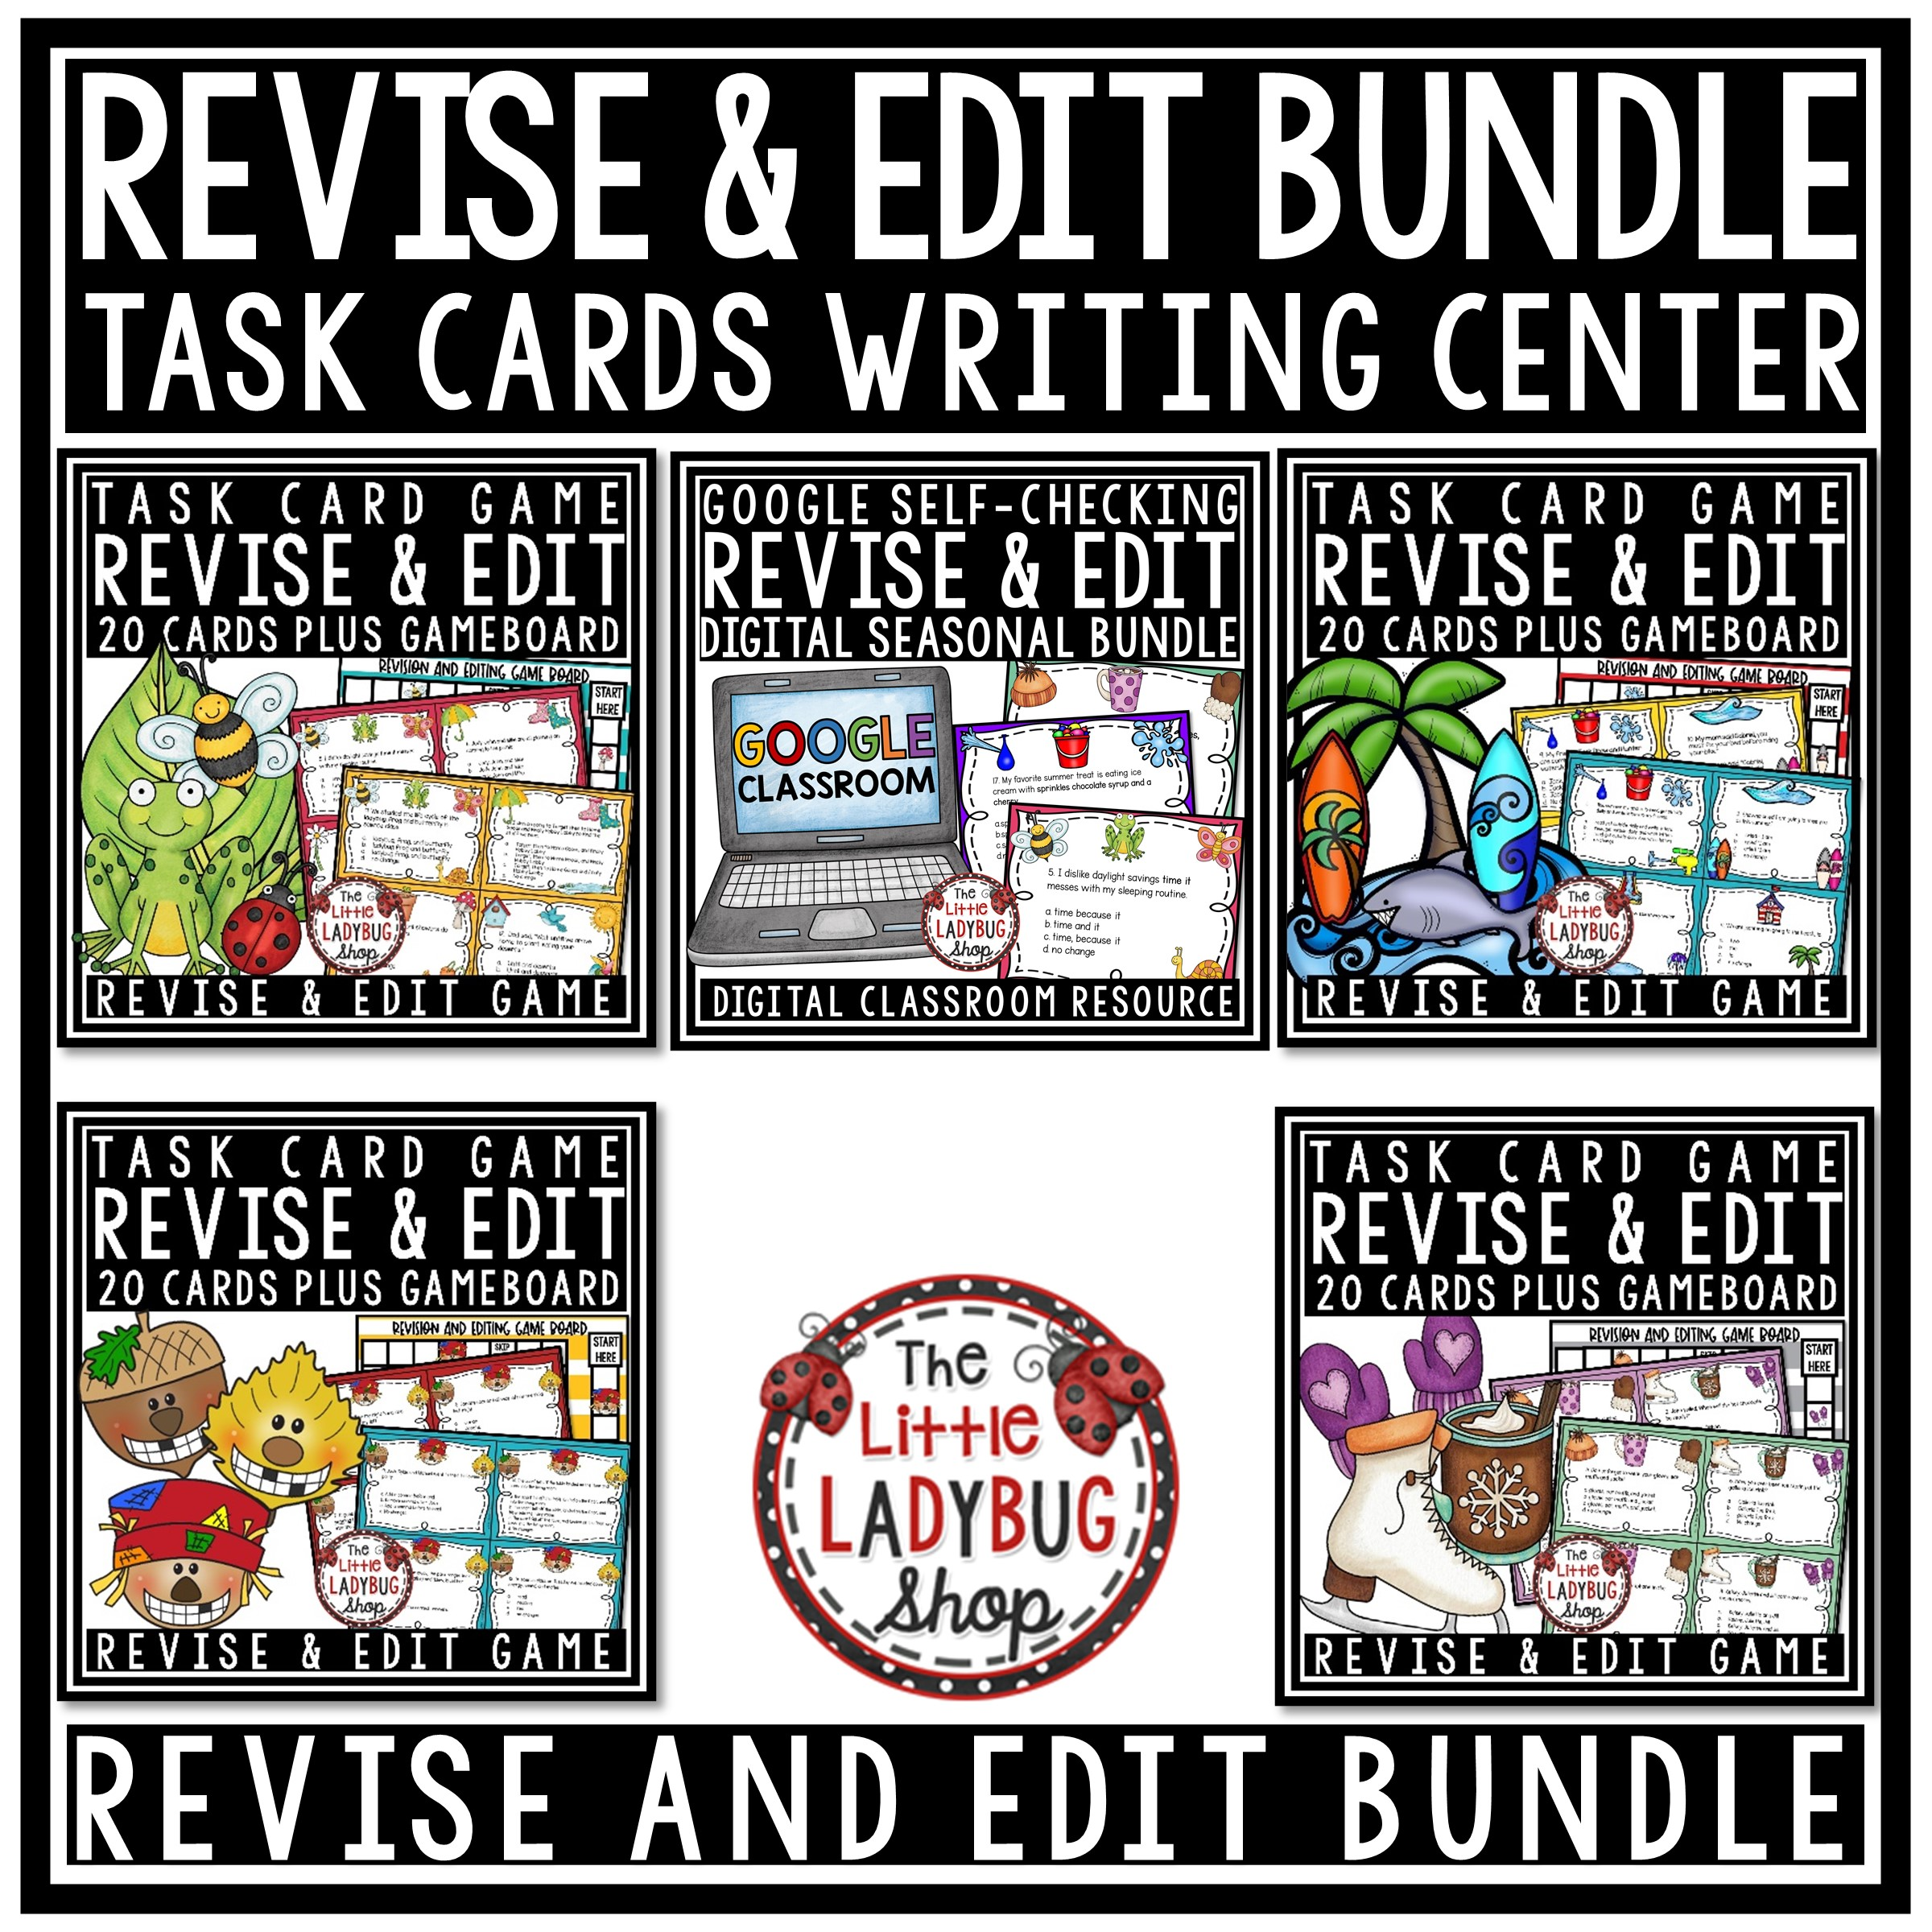 Digital Revise Amp Edit Task Card Writing Test Prep